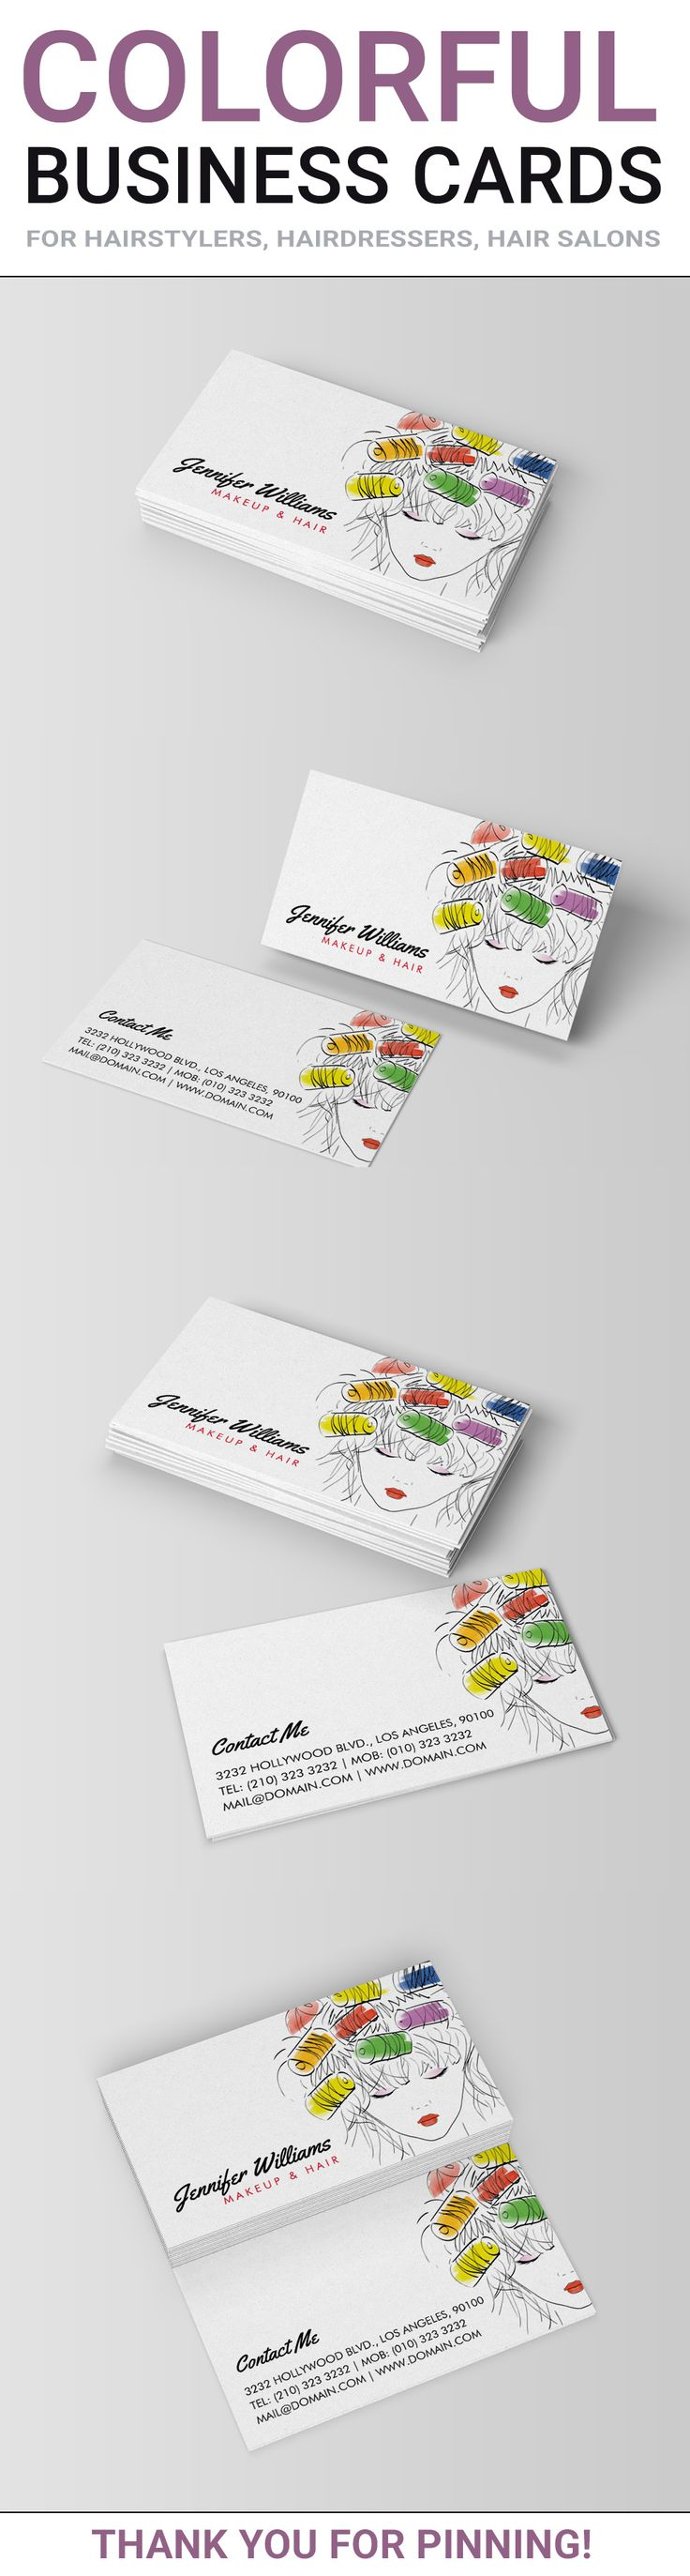 best ideas about hairstylist business cards modern illustrated hairstylist makeup beauty salon business card